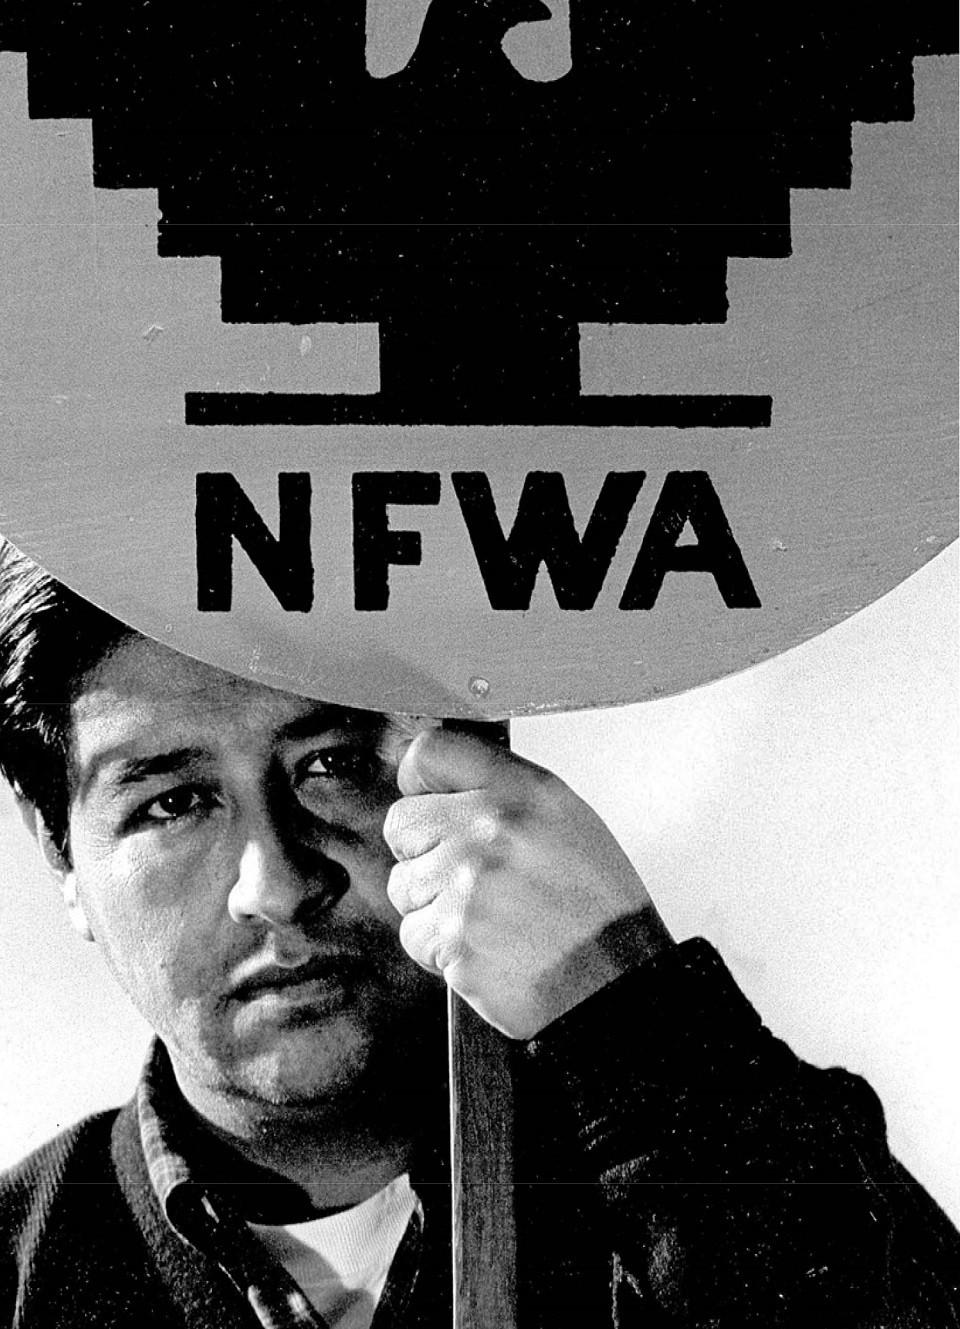 Historic image of Cesar Chavez carrying a picket sign